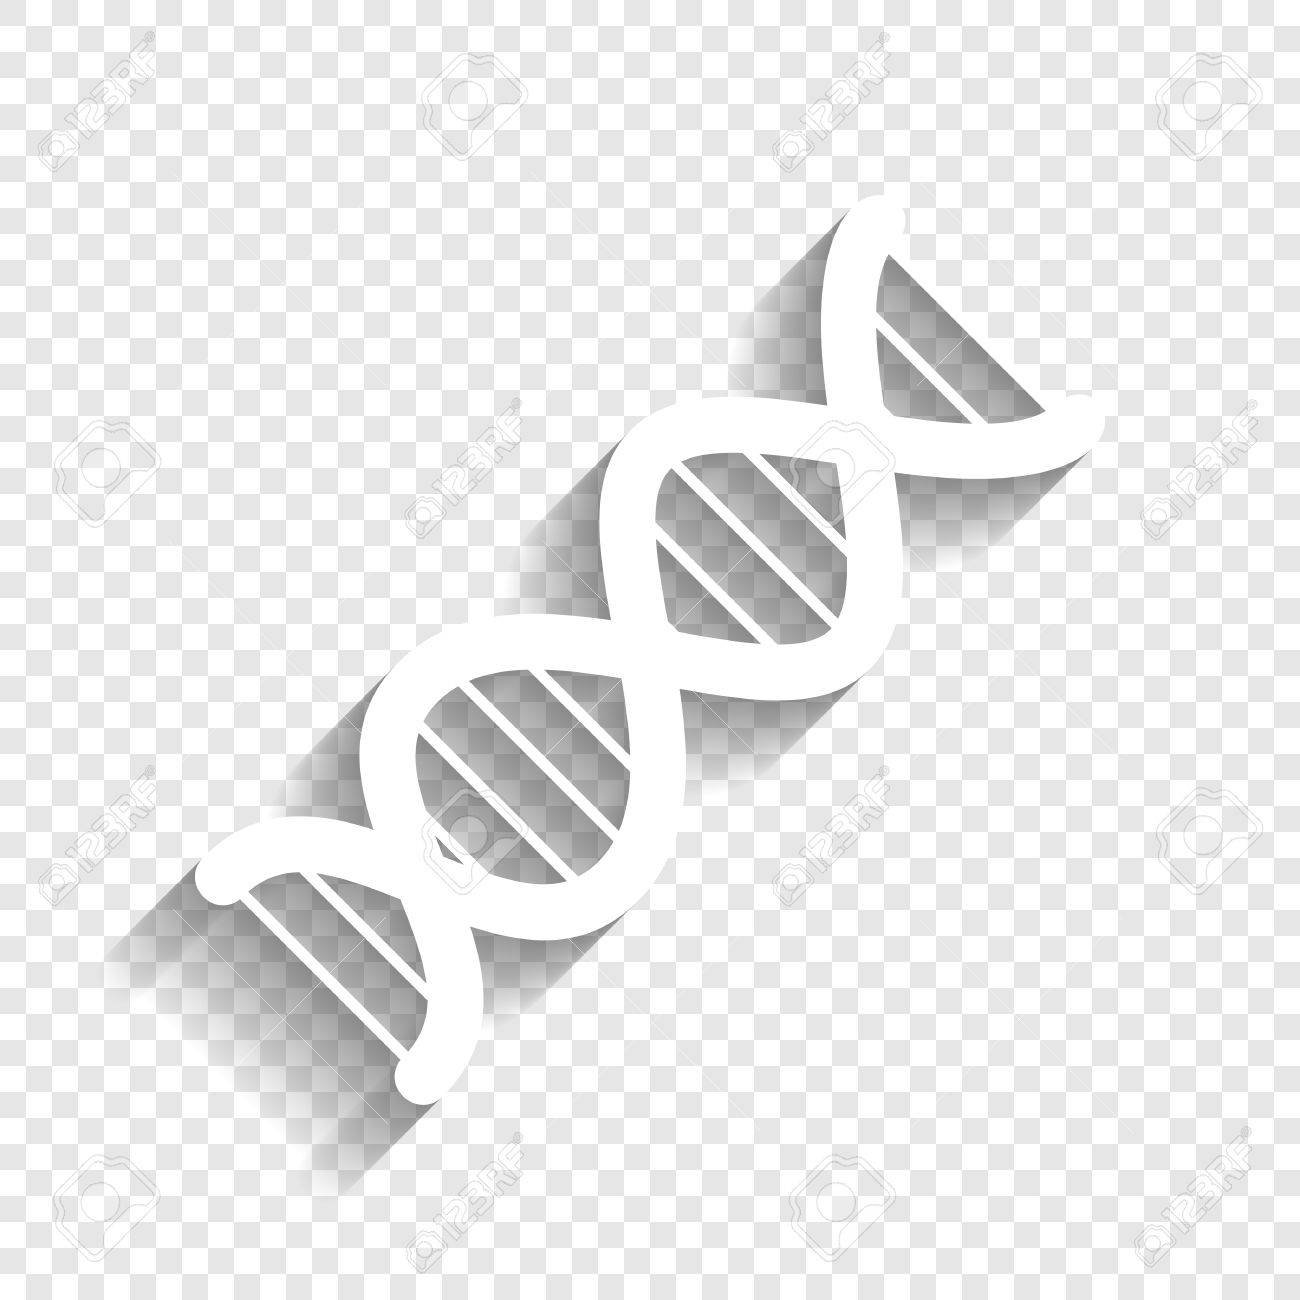 the dna sign. vector. white icon with soft shadow on transparent